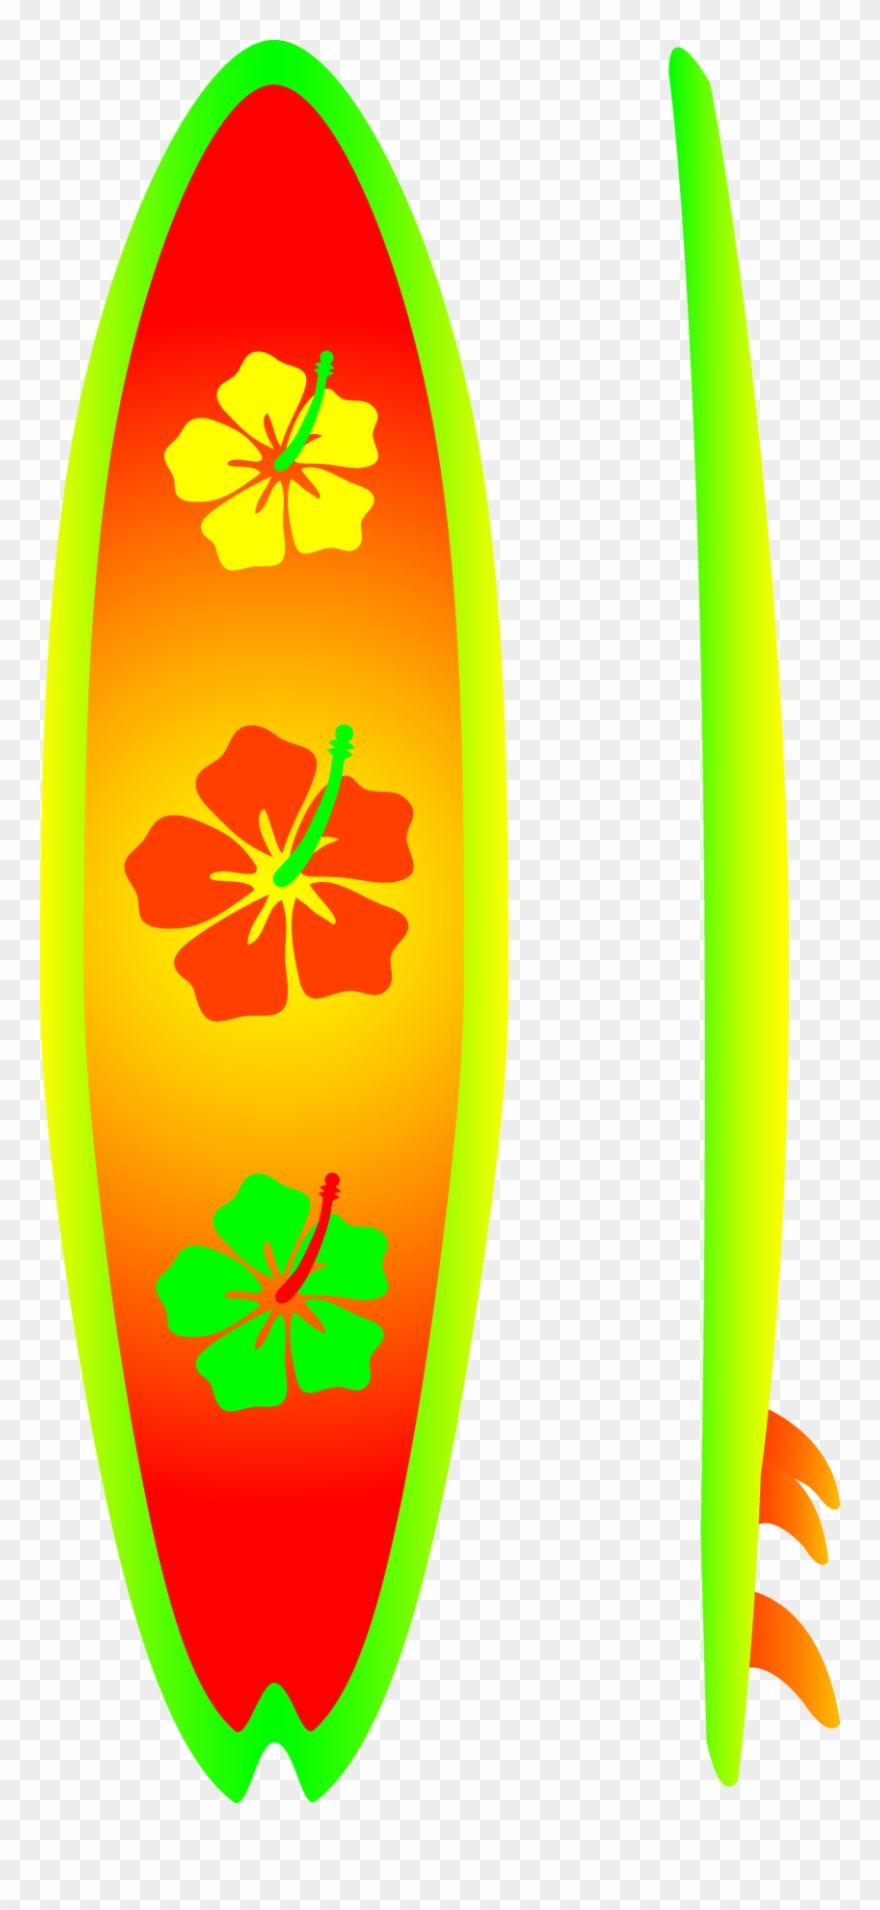 Neon Surfboard With Hibiscus Design Free Clip Art - Surfing